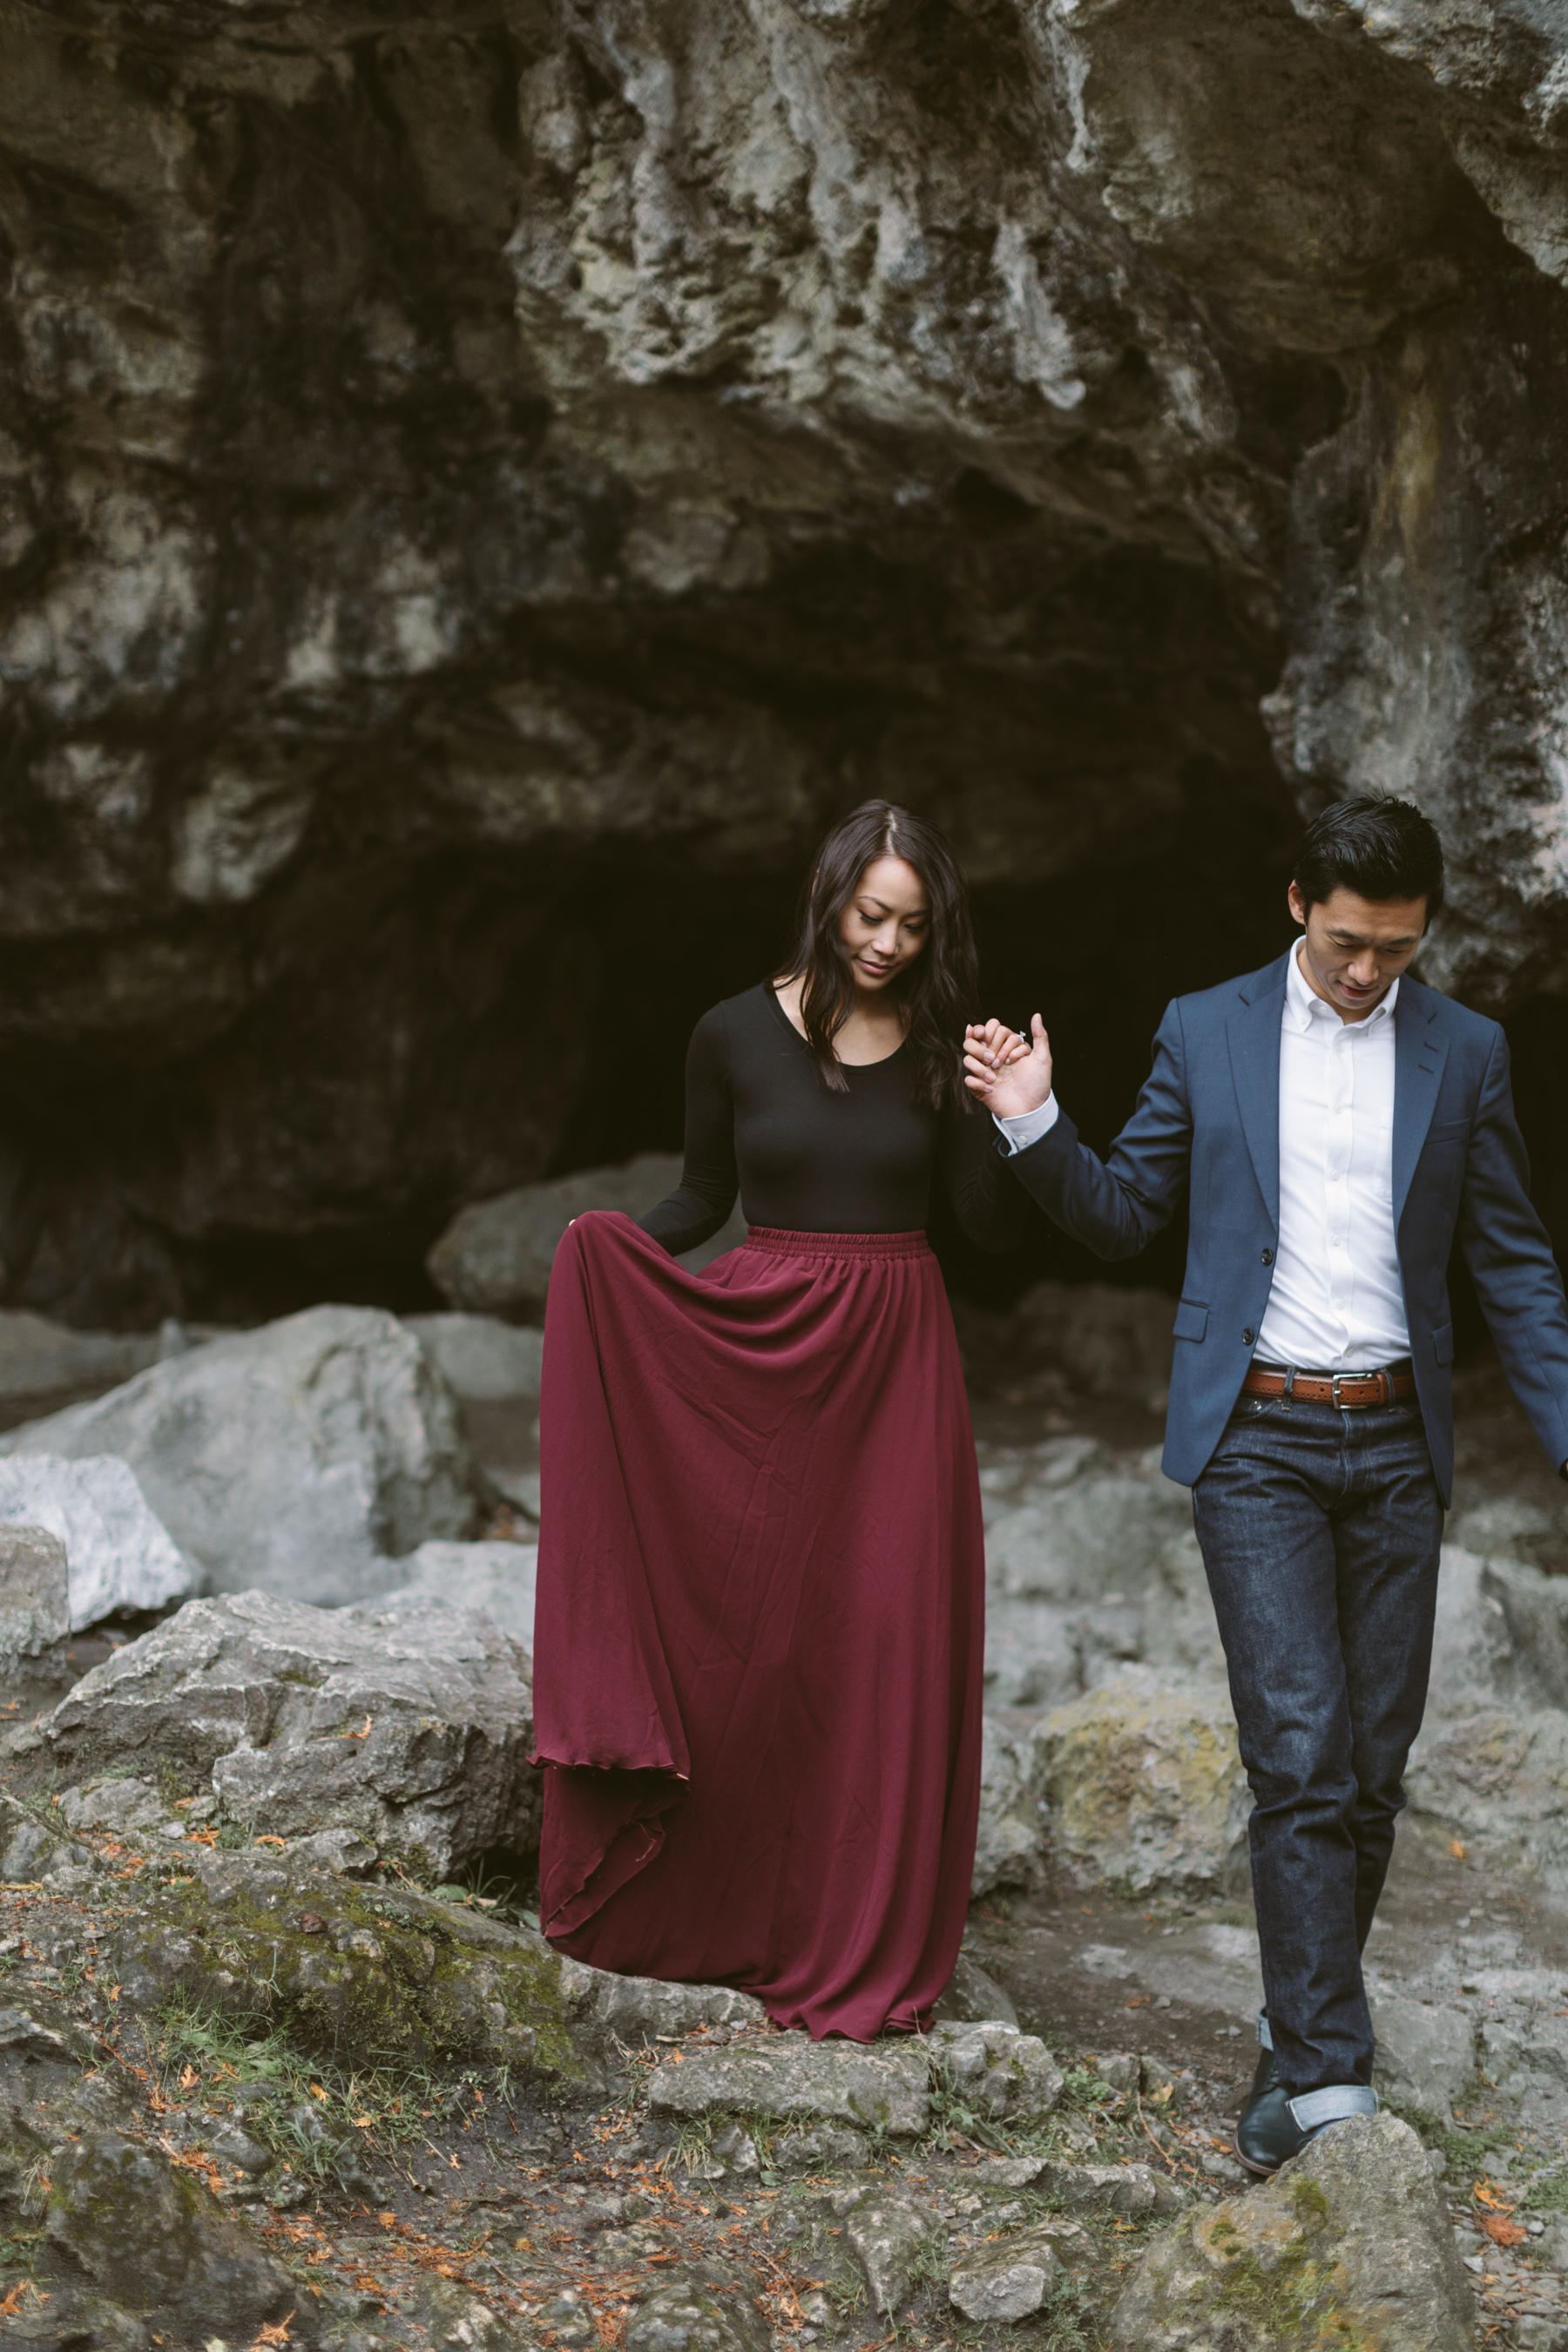 Rainy_Day_Engagement_Photos_Toronto_Wedding_Photographer_Melissa_Sung_Photography_0004.jpg